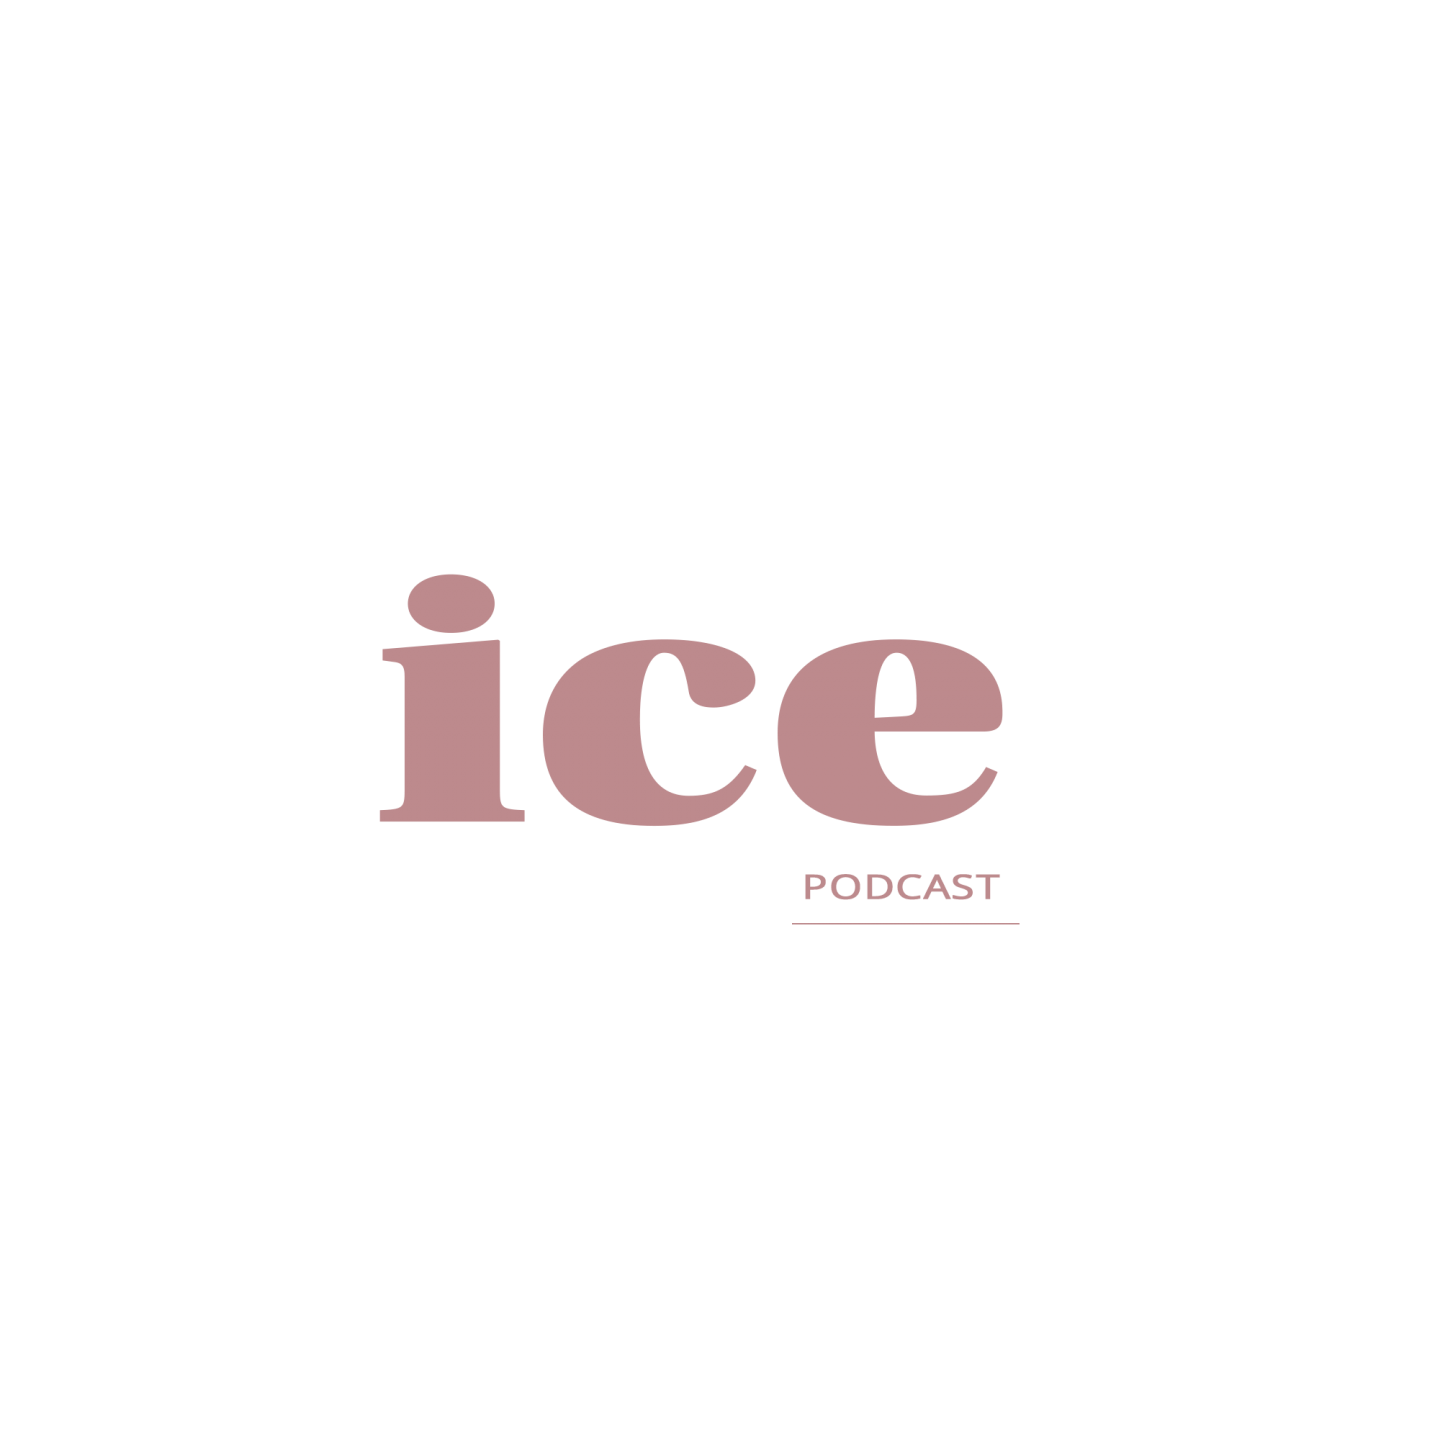 ICE Podcast